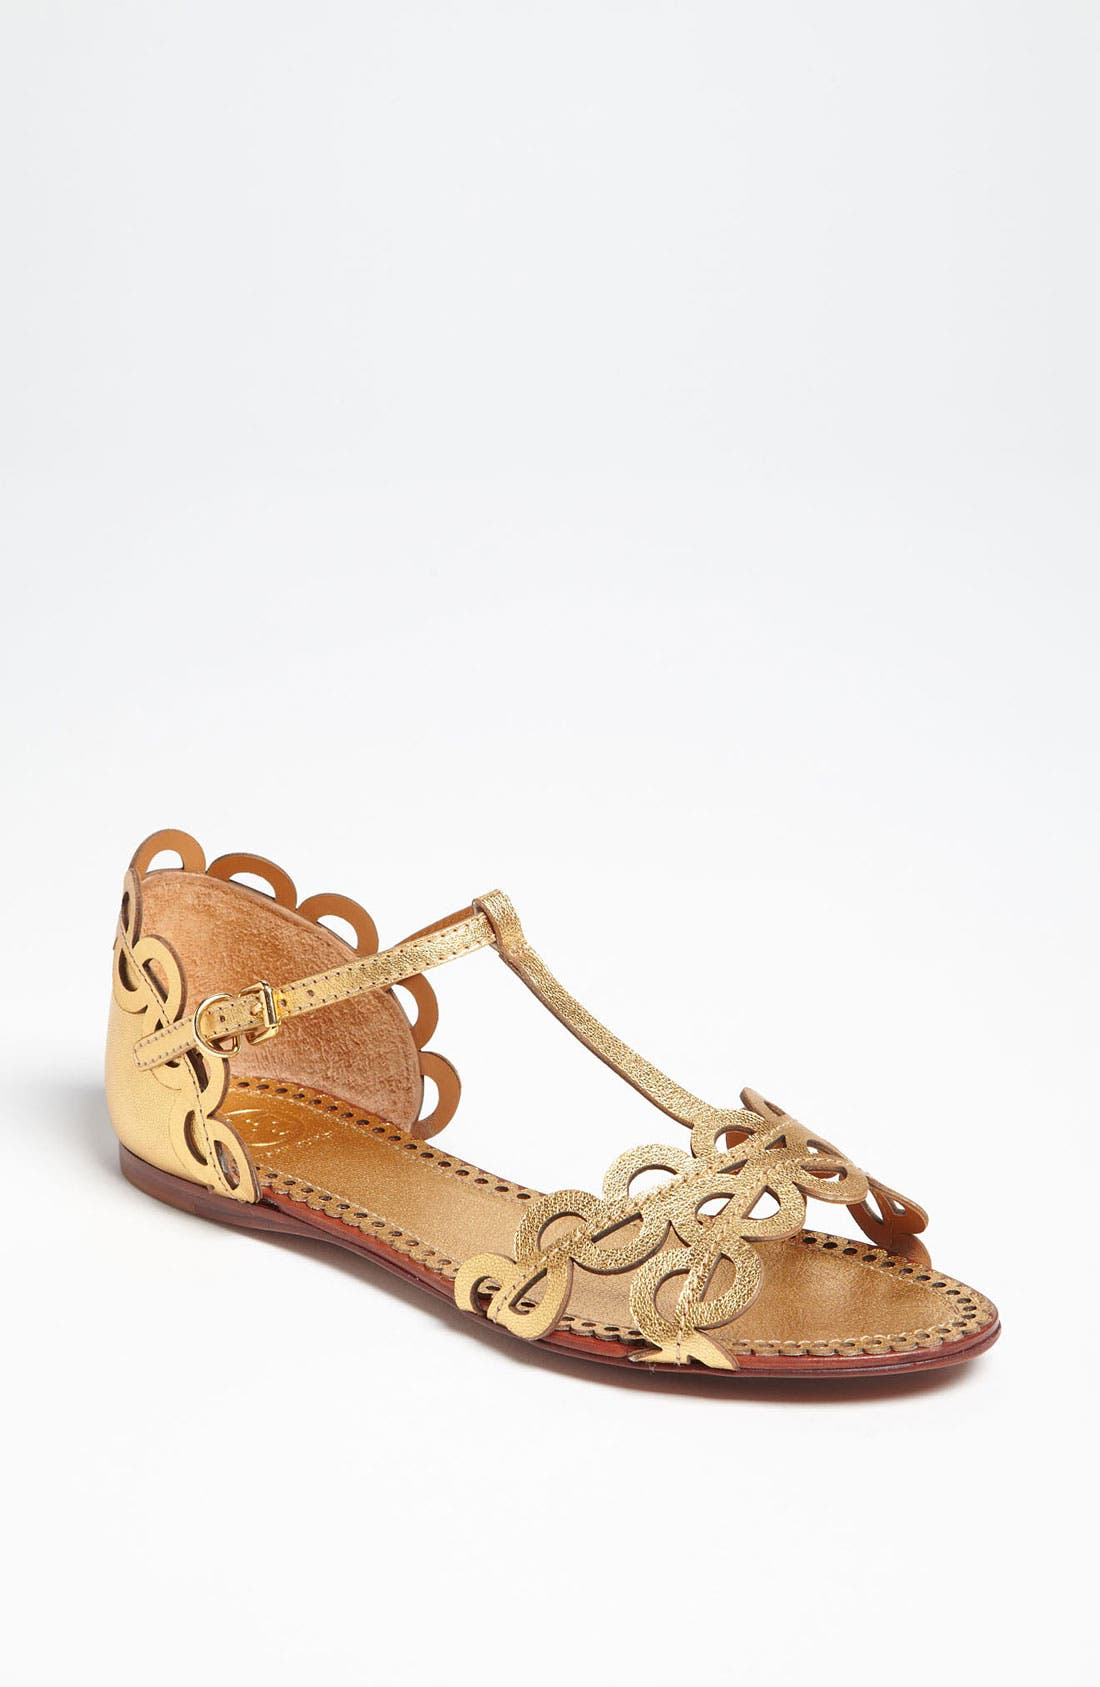 Alternate Image 1 Selected - Tory Burch 'Aileen' Flat Sandal